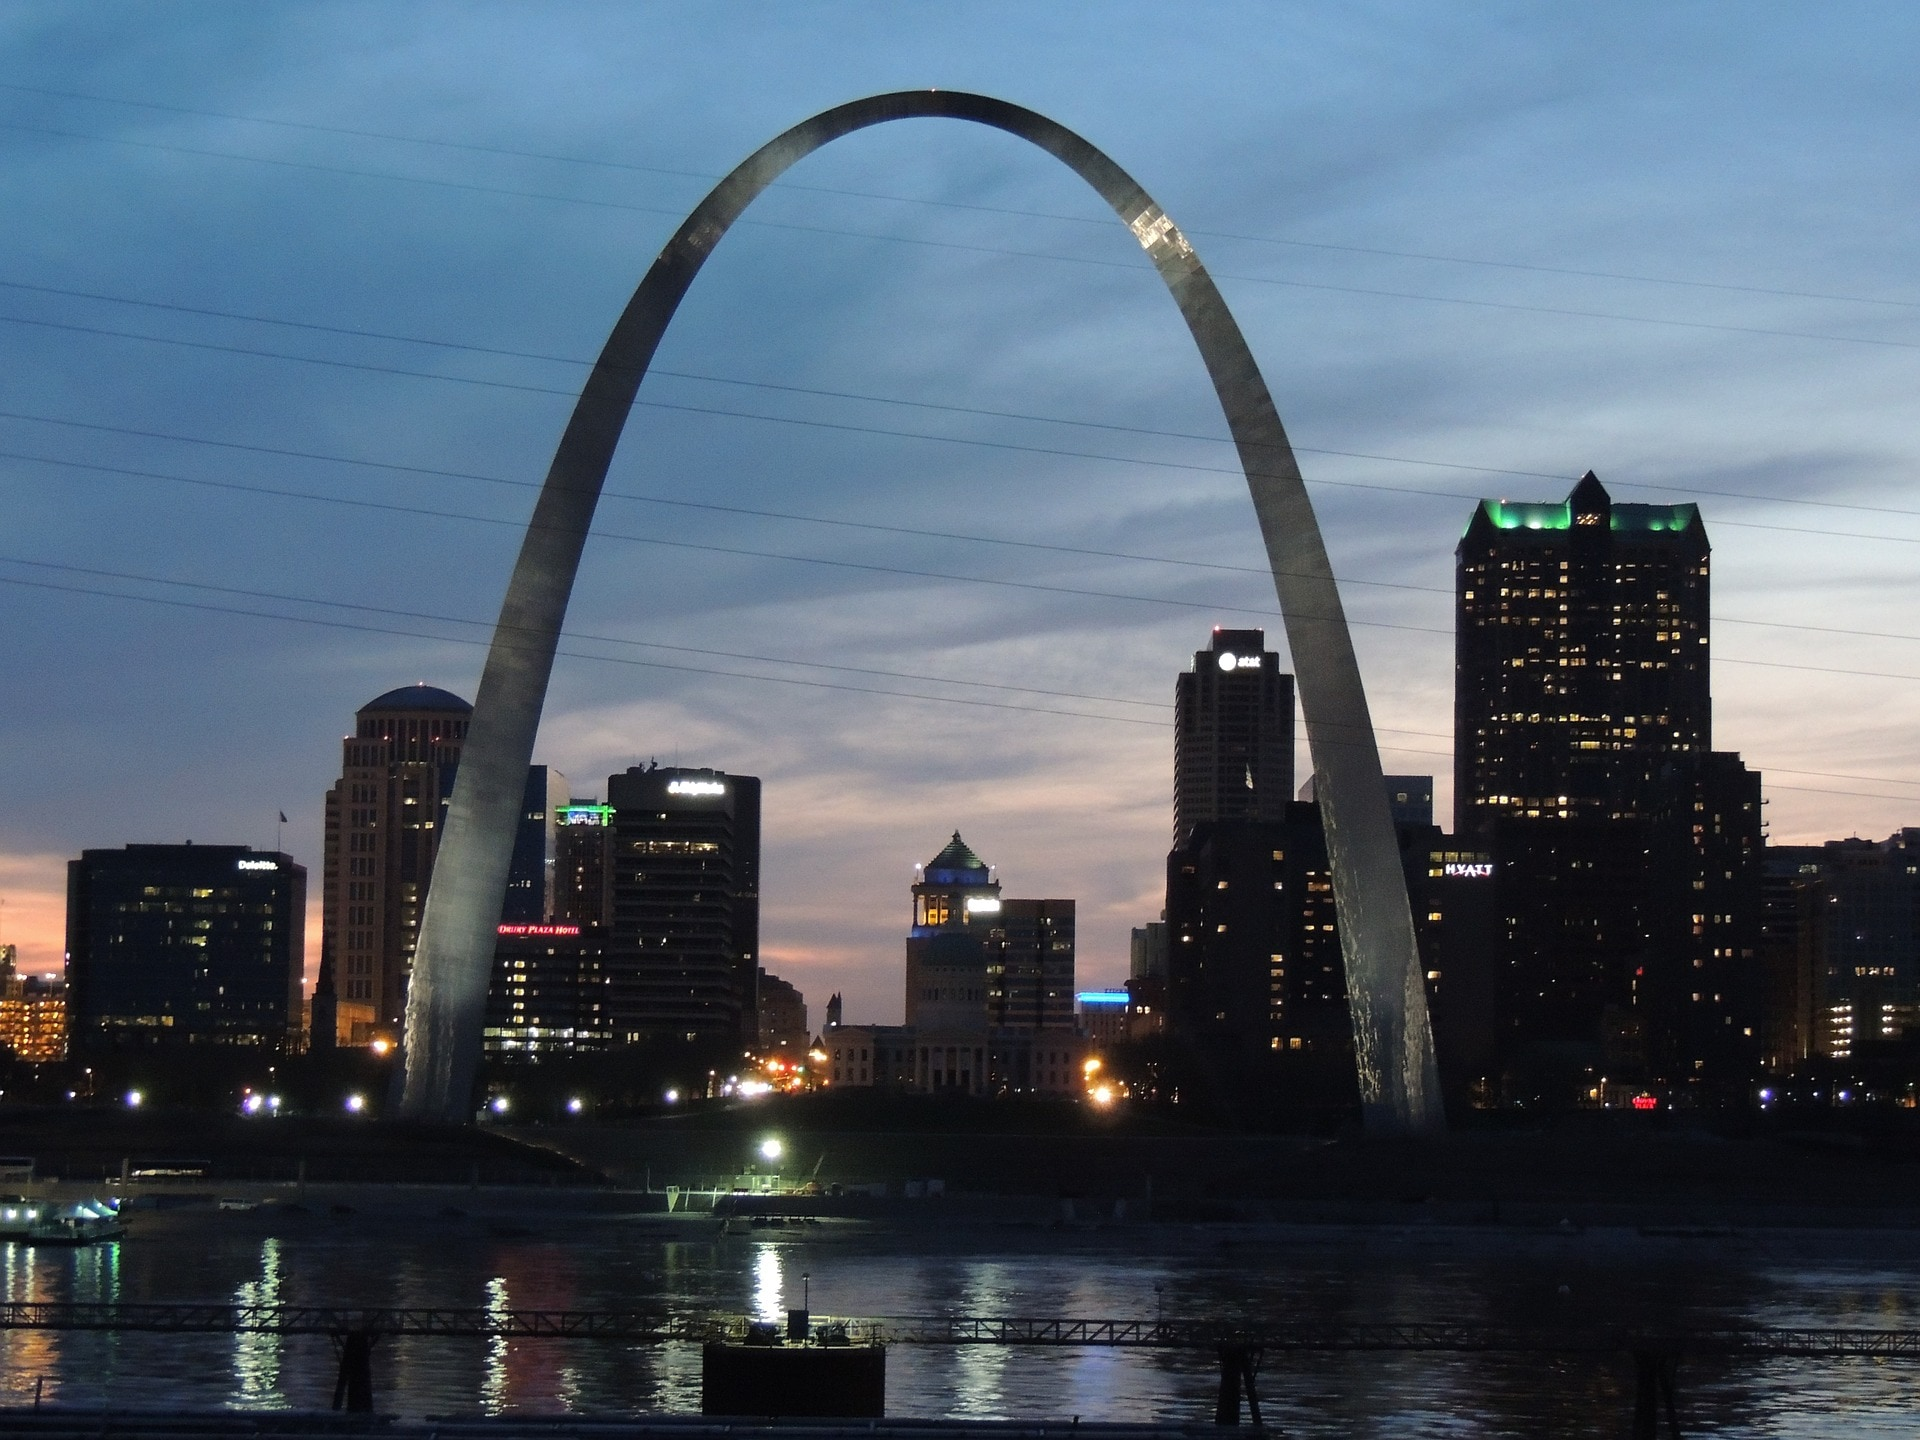 the Gateway arch over Saint Louis MO at night